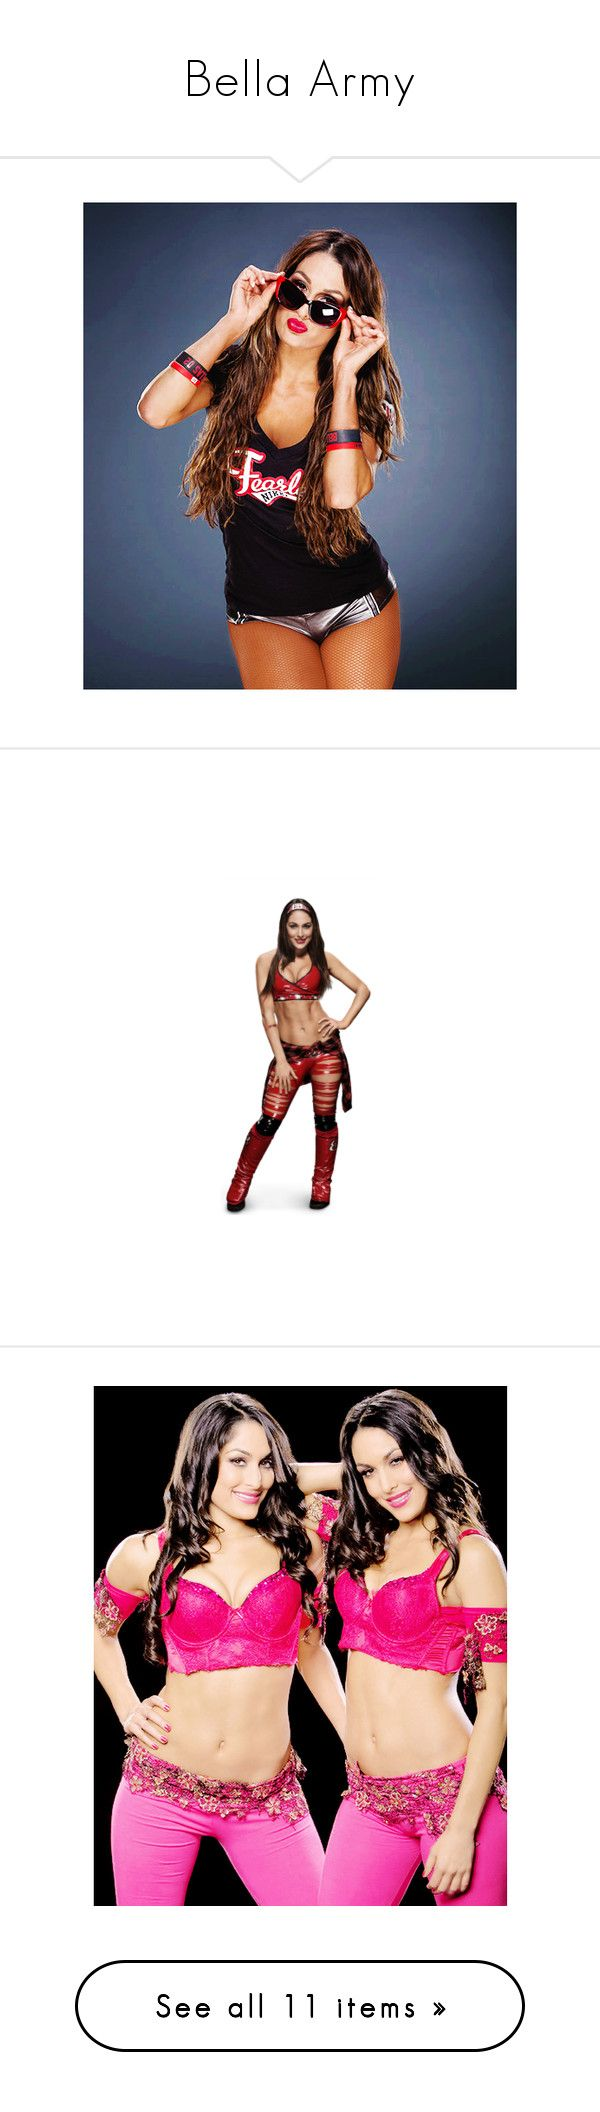 """Bella Army"" by anoai2002 ❤ liked on Polyvore featuring wwe, divas, superstars, brie bella, people, home, home decor, frames, bella twins and tops"